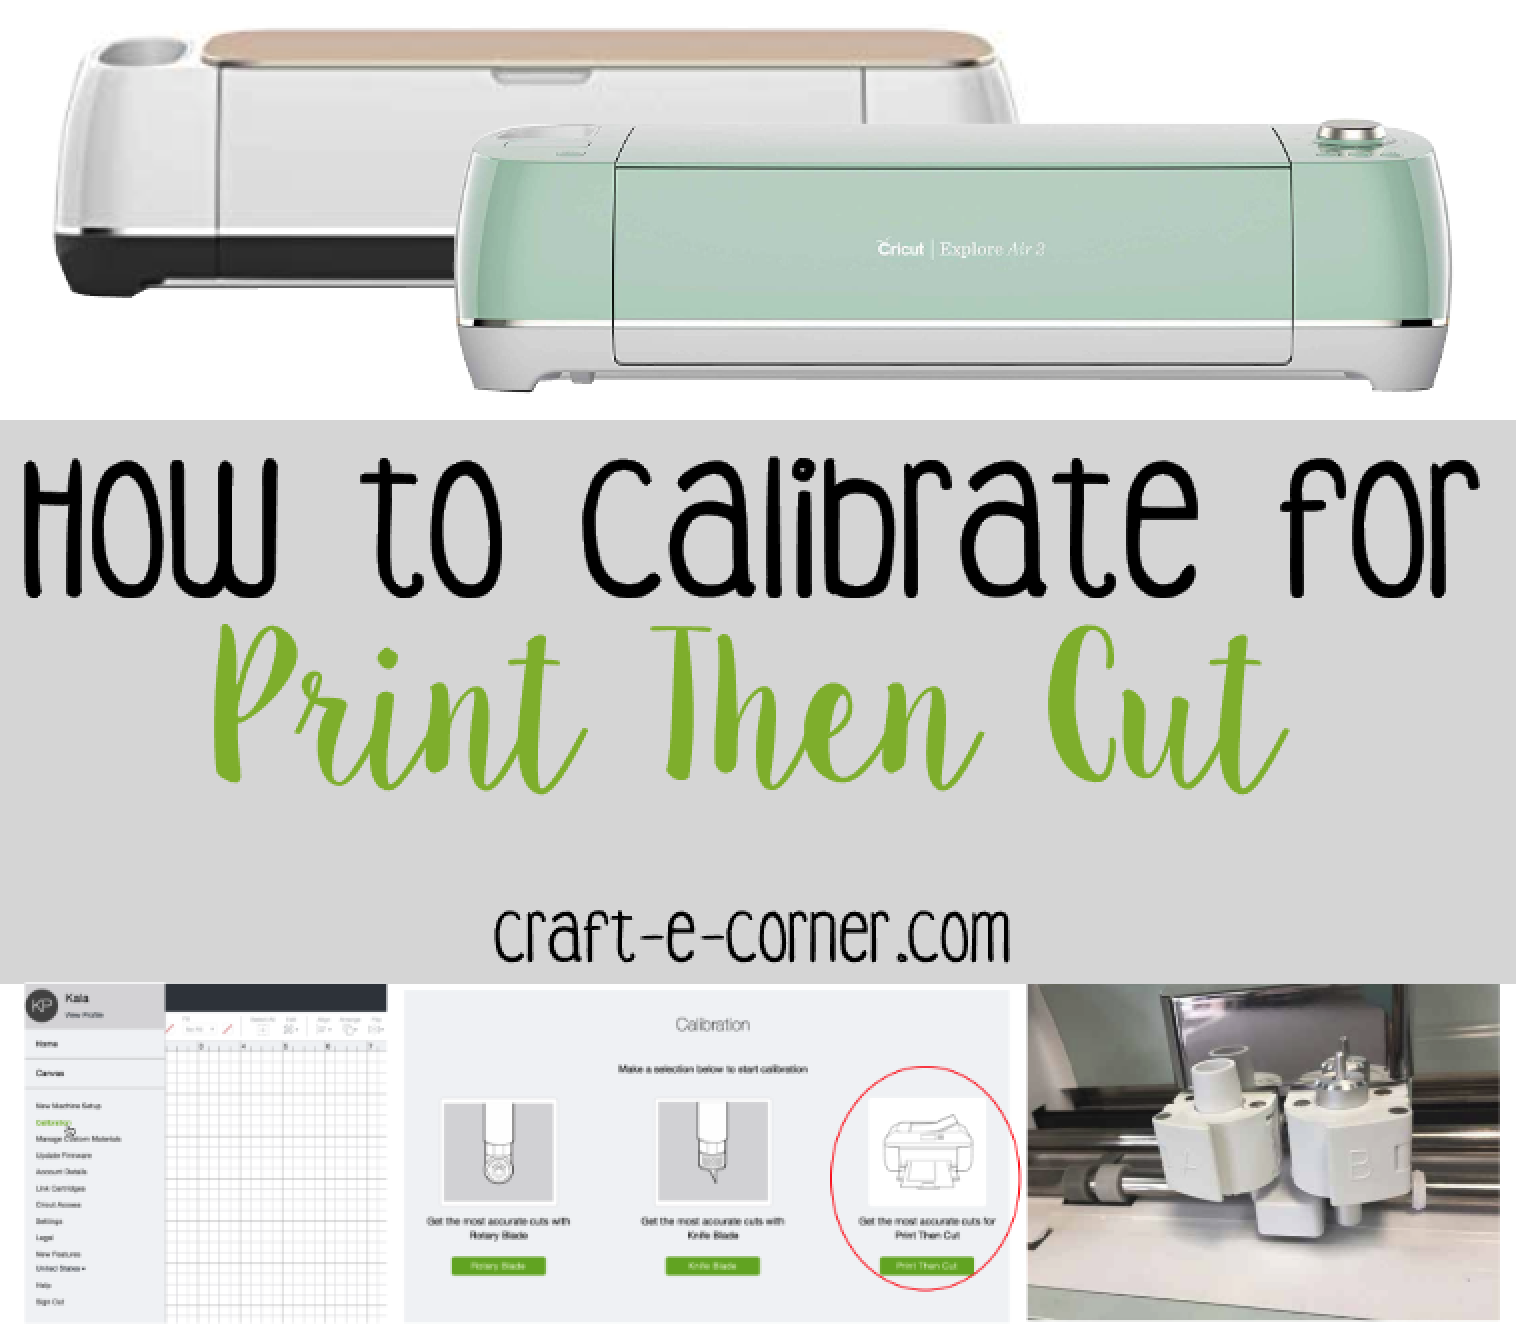 All About the Blades: How to Calibrate for Print Then Cut